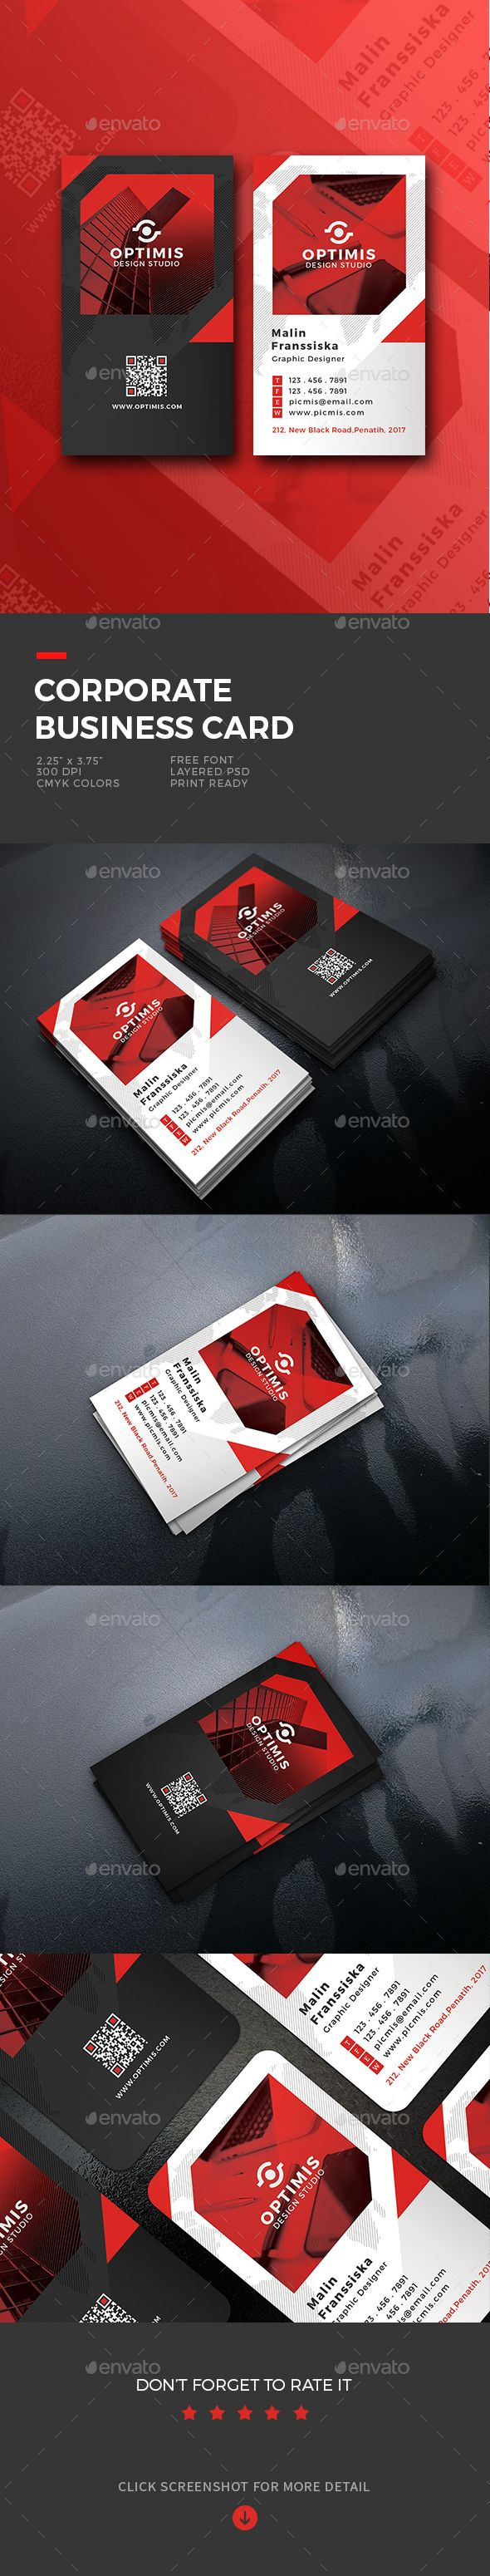 116 best name card images on pinterest business card design corporate business card template psd reheart Choice Image